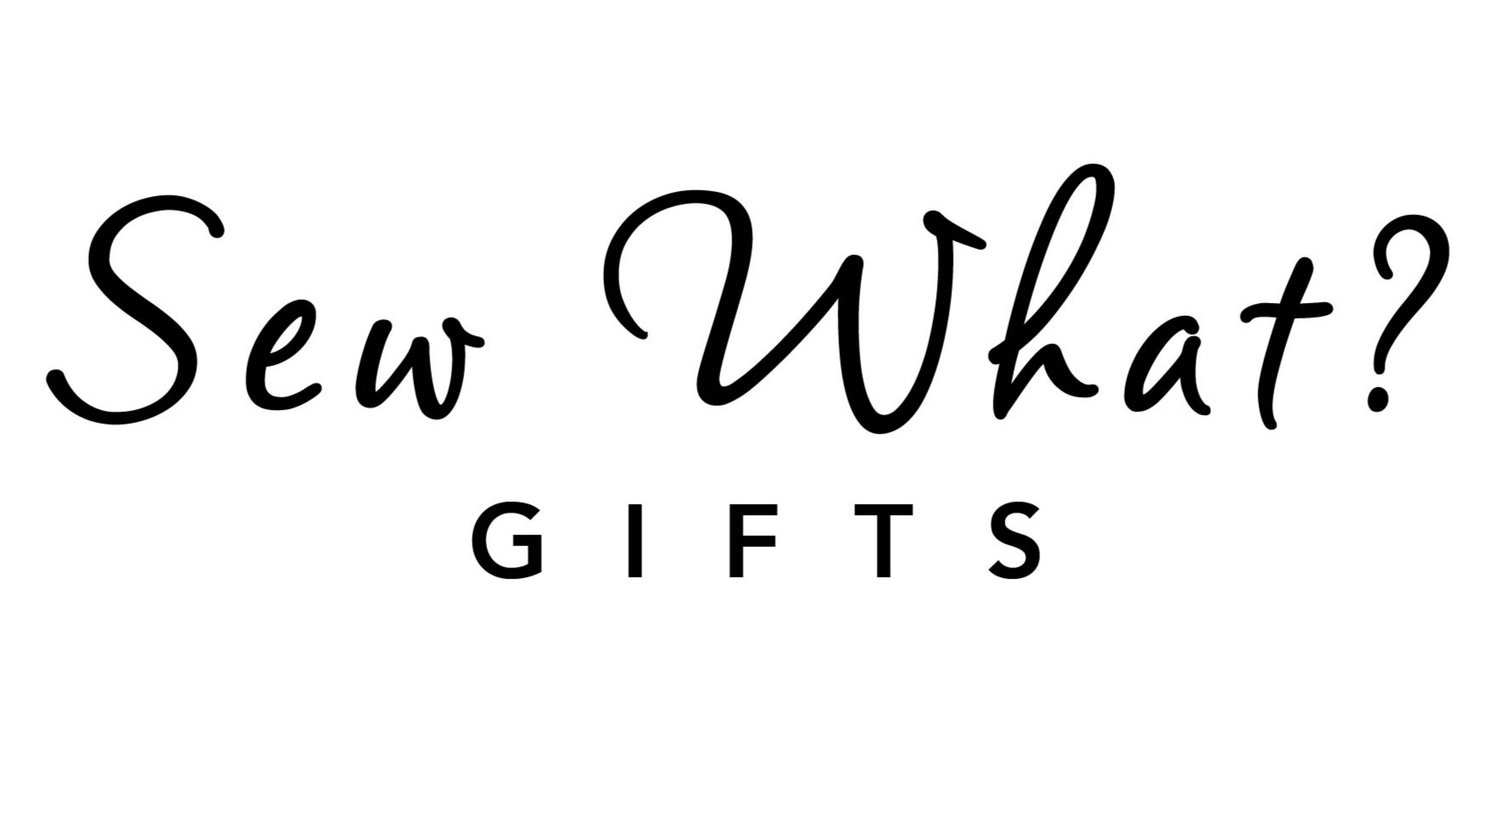 Sew What? Gifts